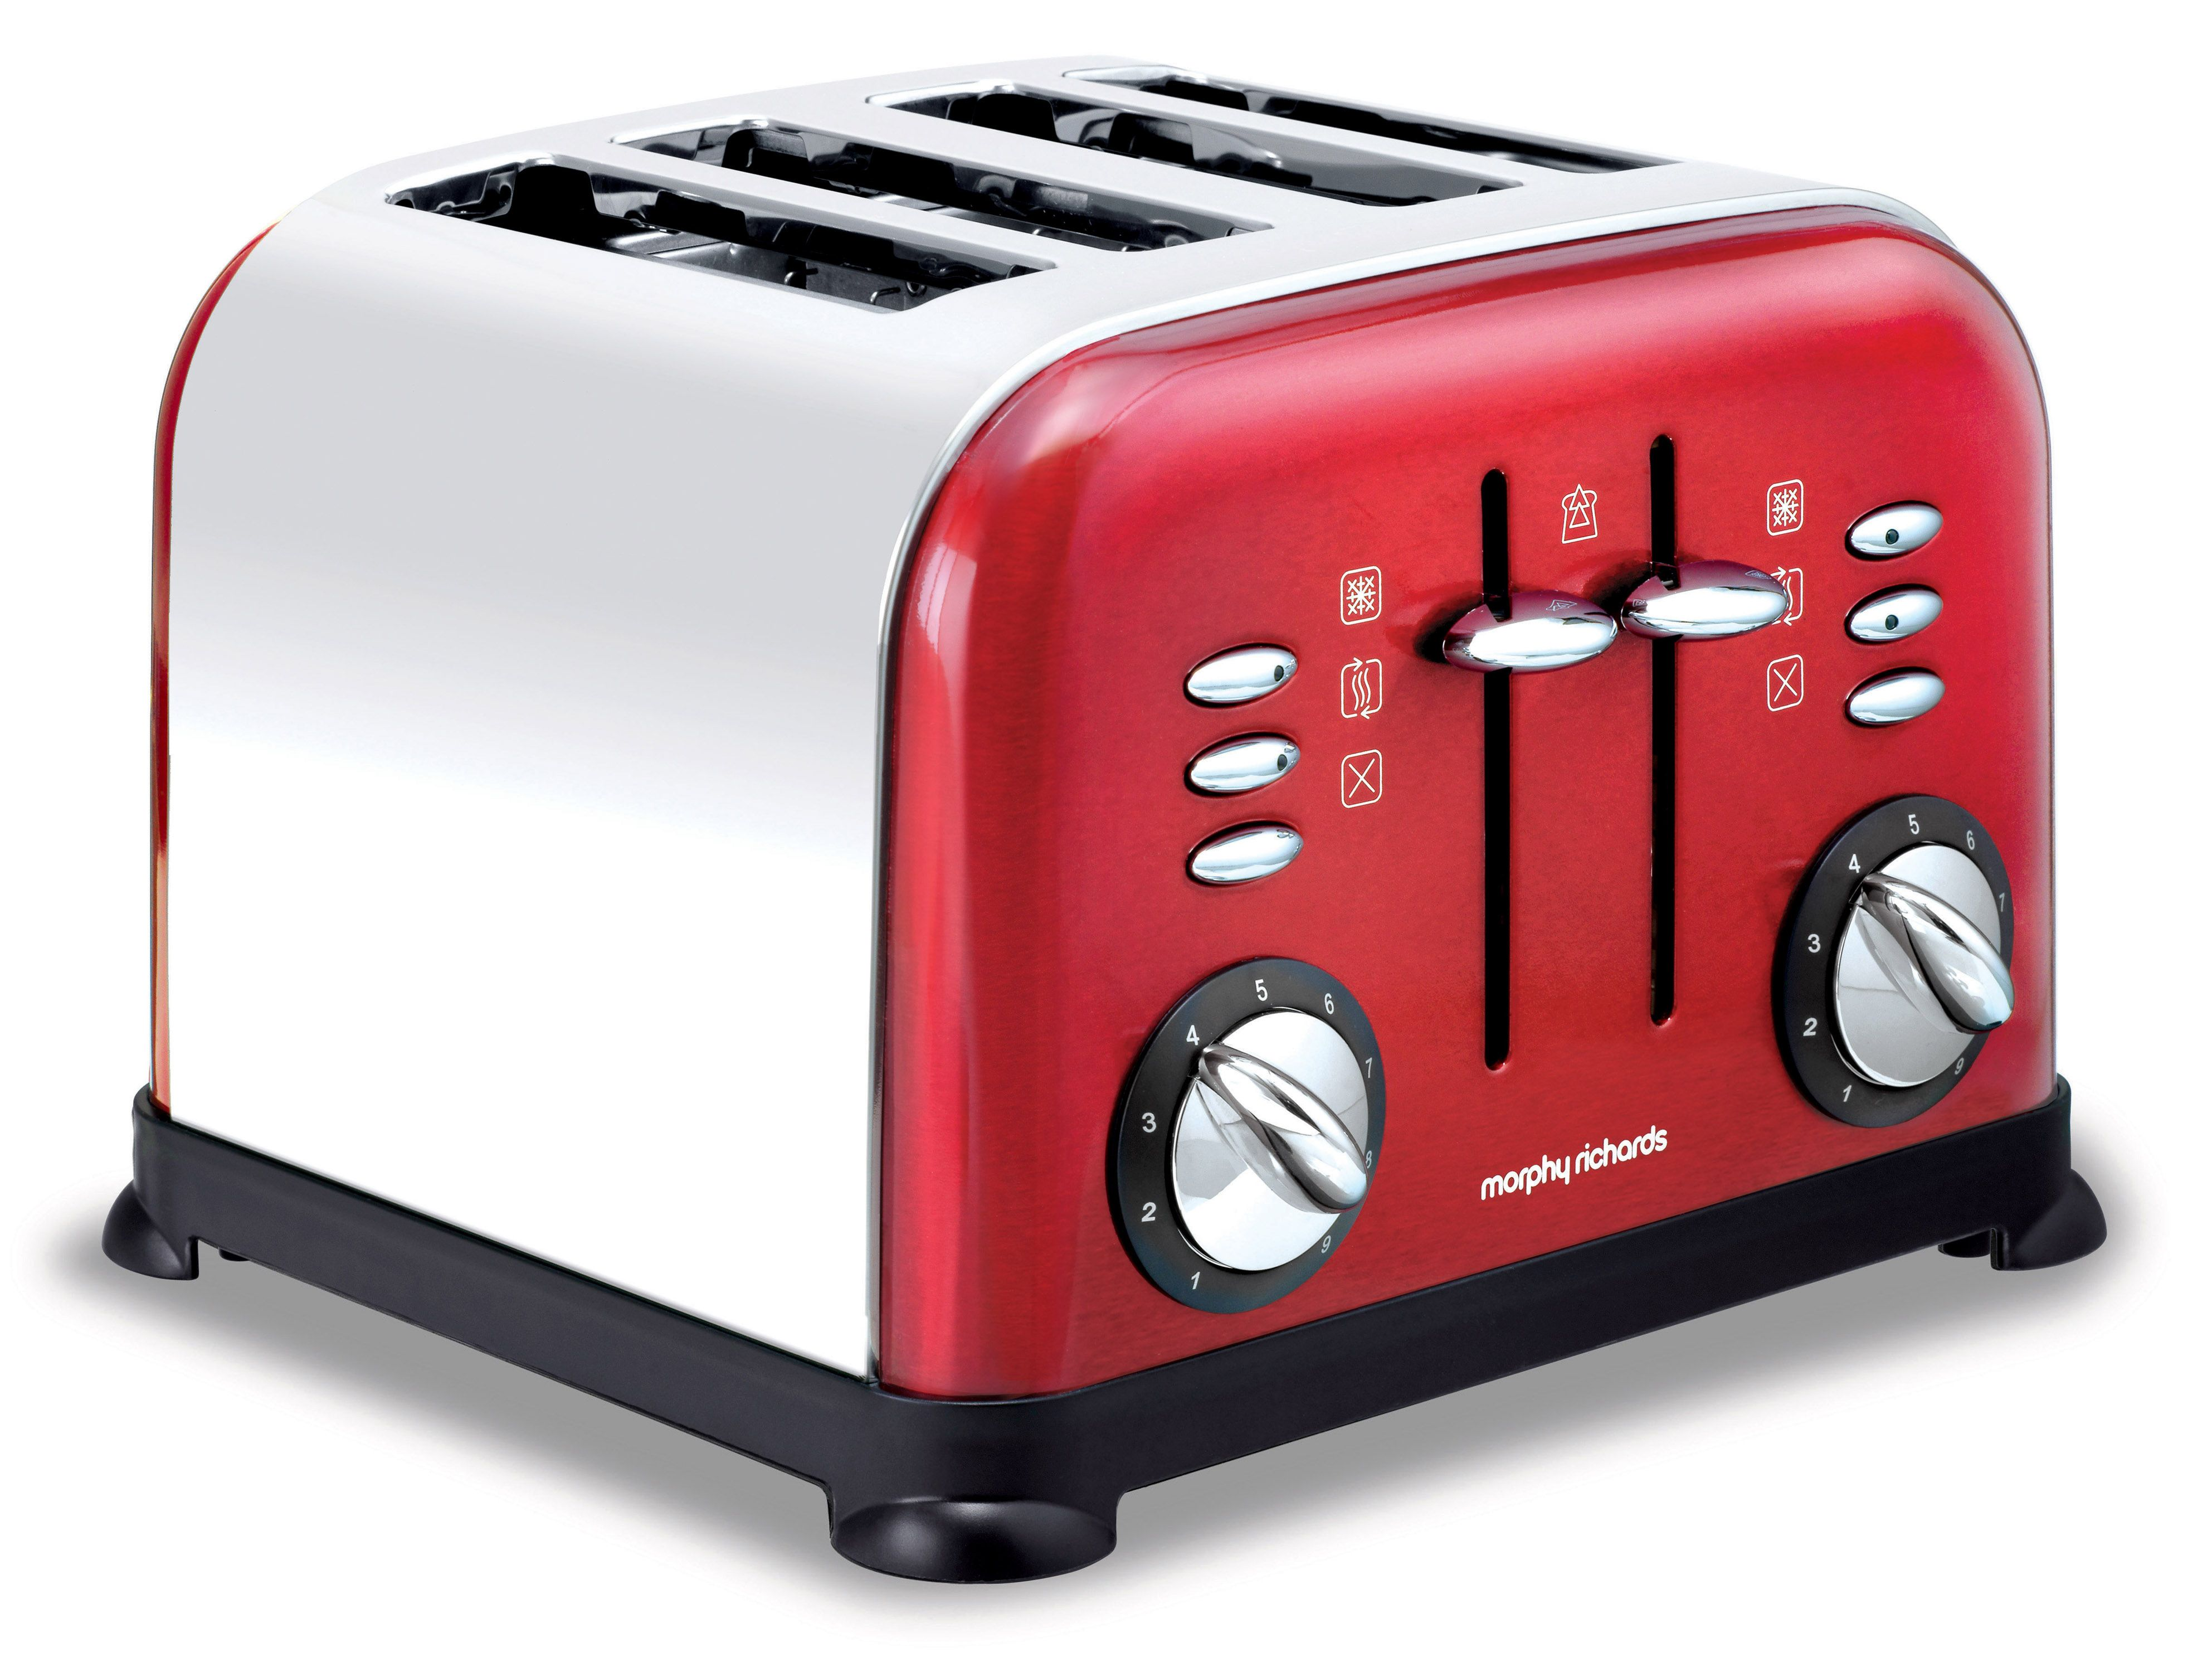 Accents 44732 4 slice red toaster